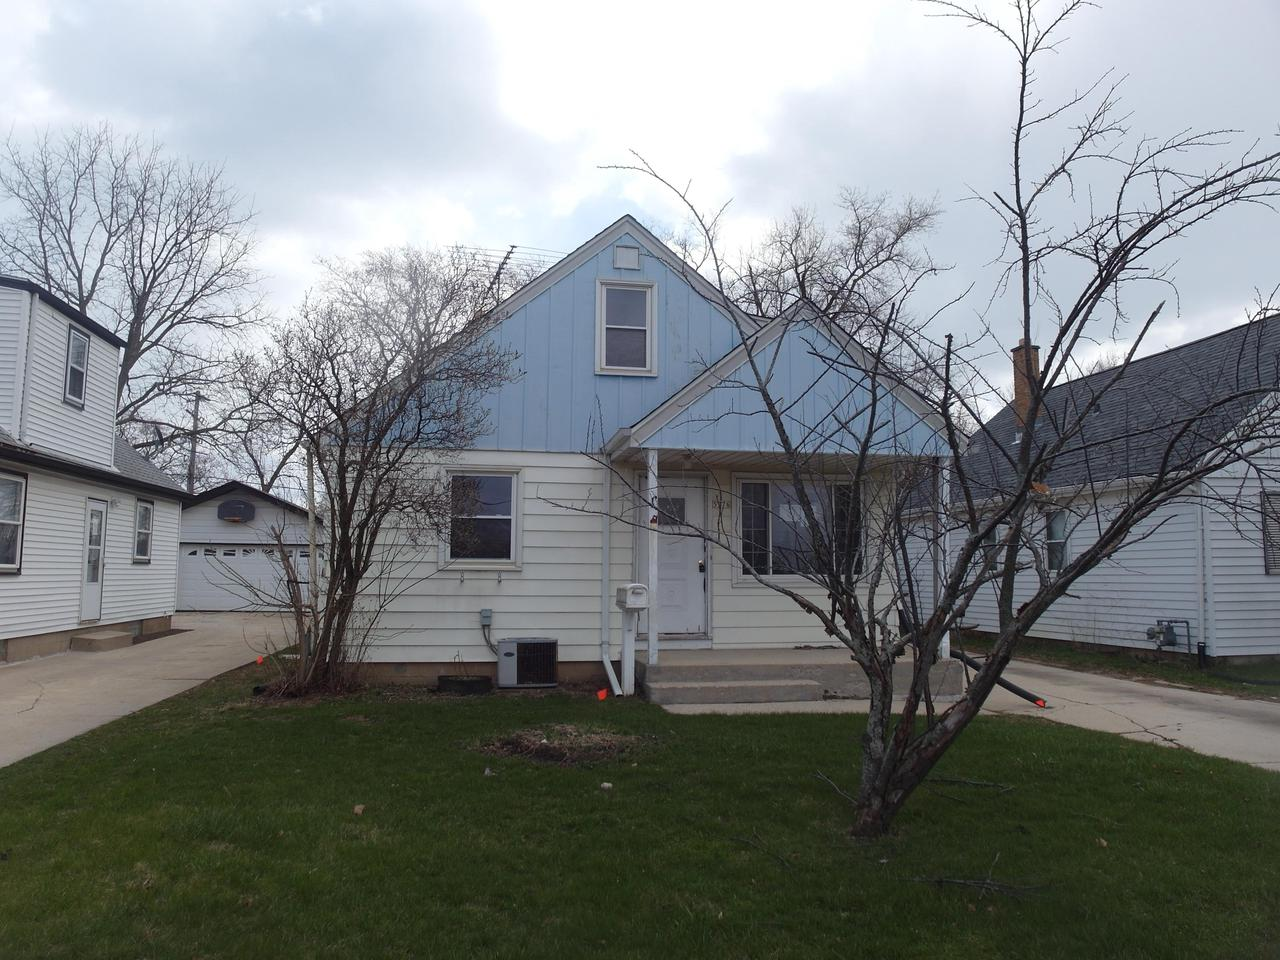 HUD owned and offered ''AS-IS'' without repairs or warranties. This is a single family house with lots of potential and located in a great area. Unit is winterized. Buyer to be responsible for all code compliance, closing costs, DNS charges and special assessments.